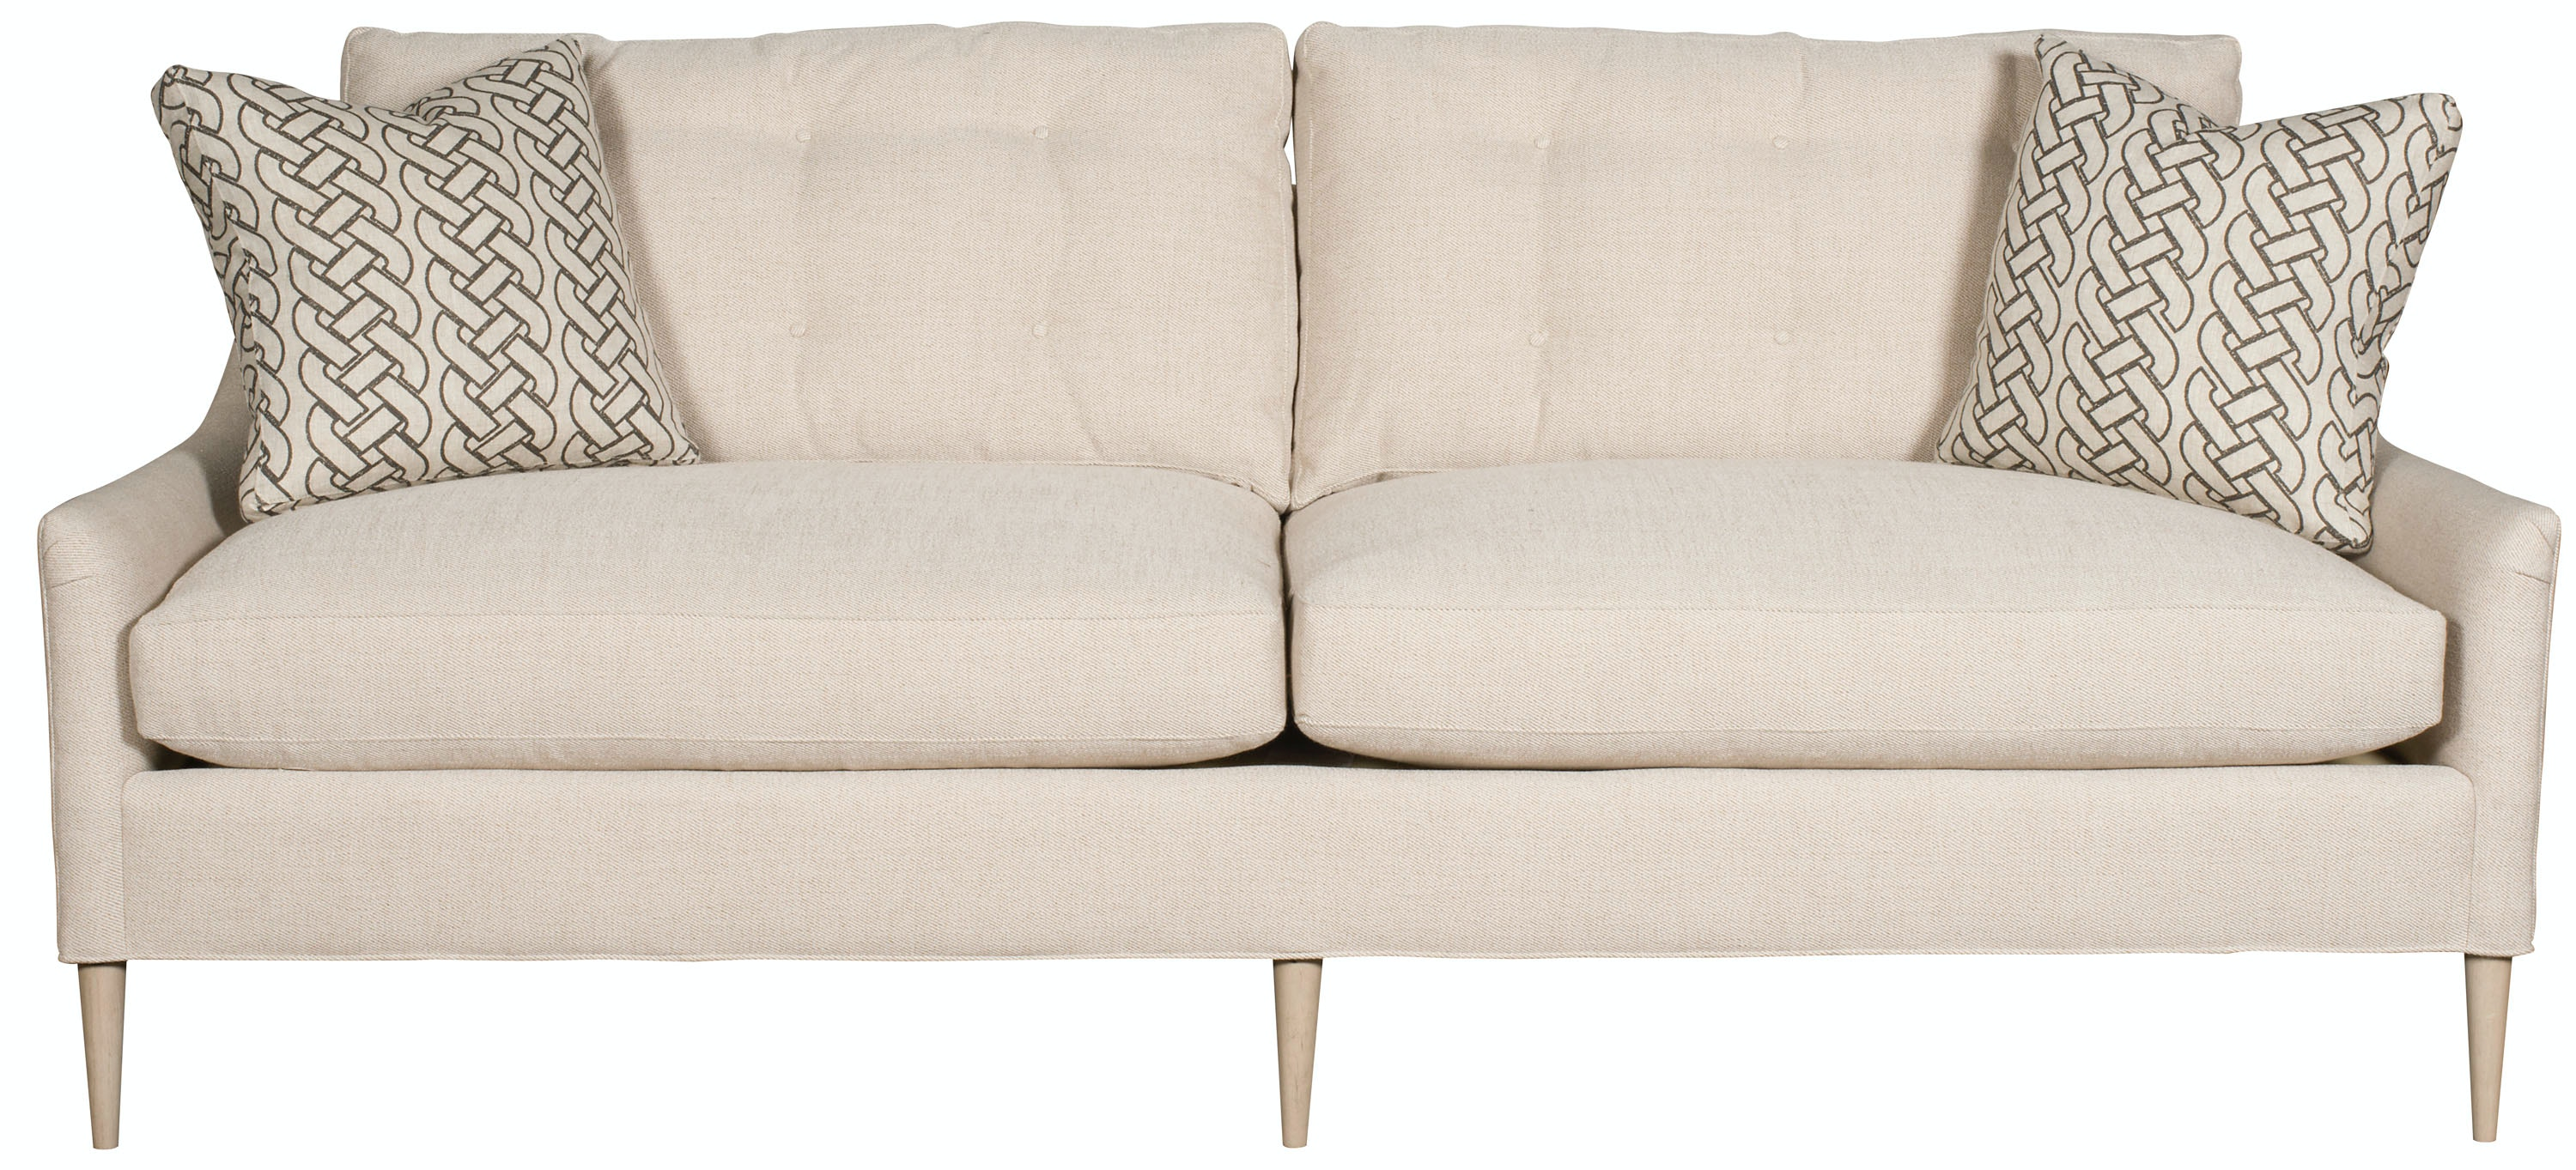 Delicieux Vanguard Furniture Lydia Button Back Sofa V963 2S